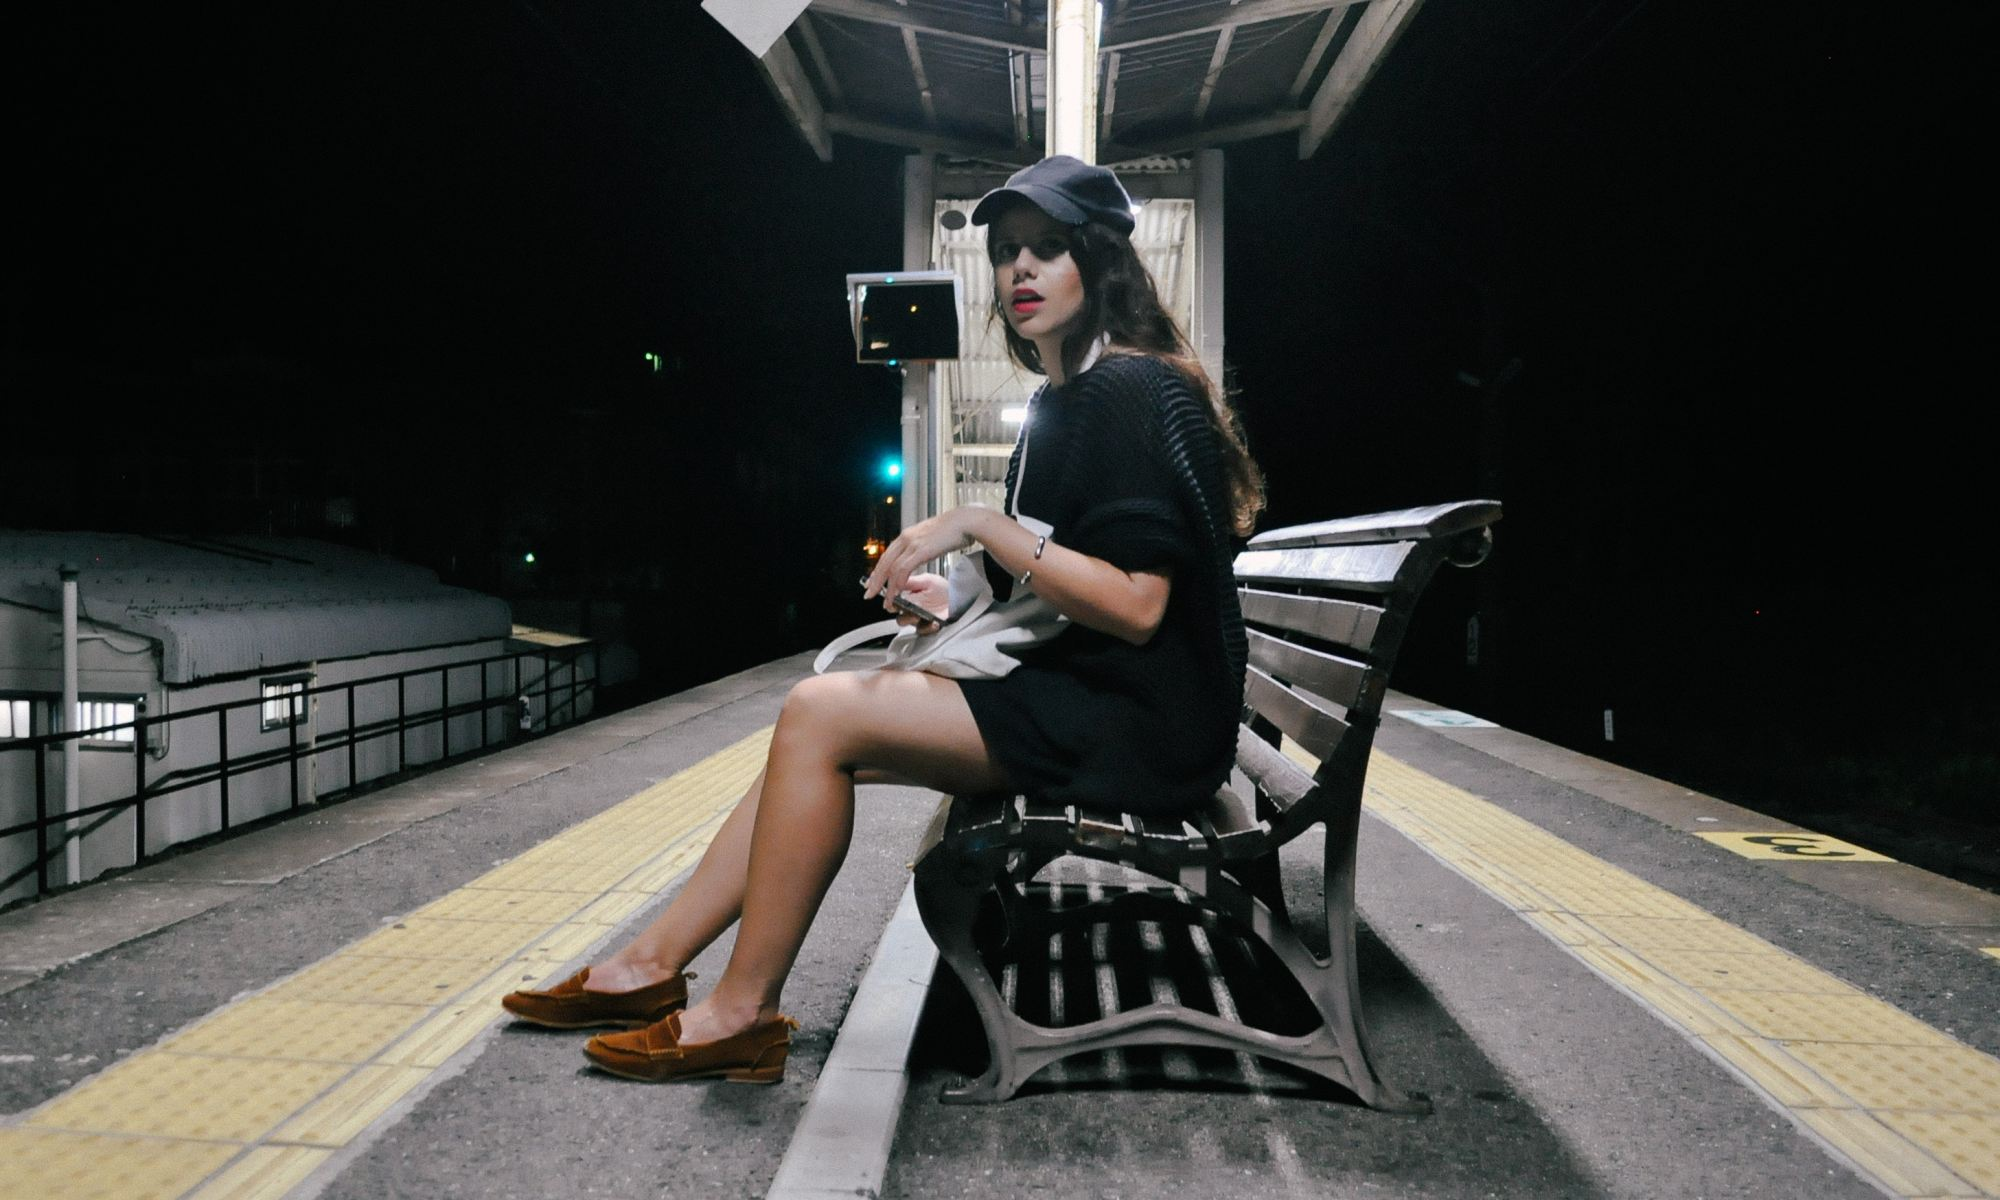 Single brunette woman sitting on bench waiting for metro